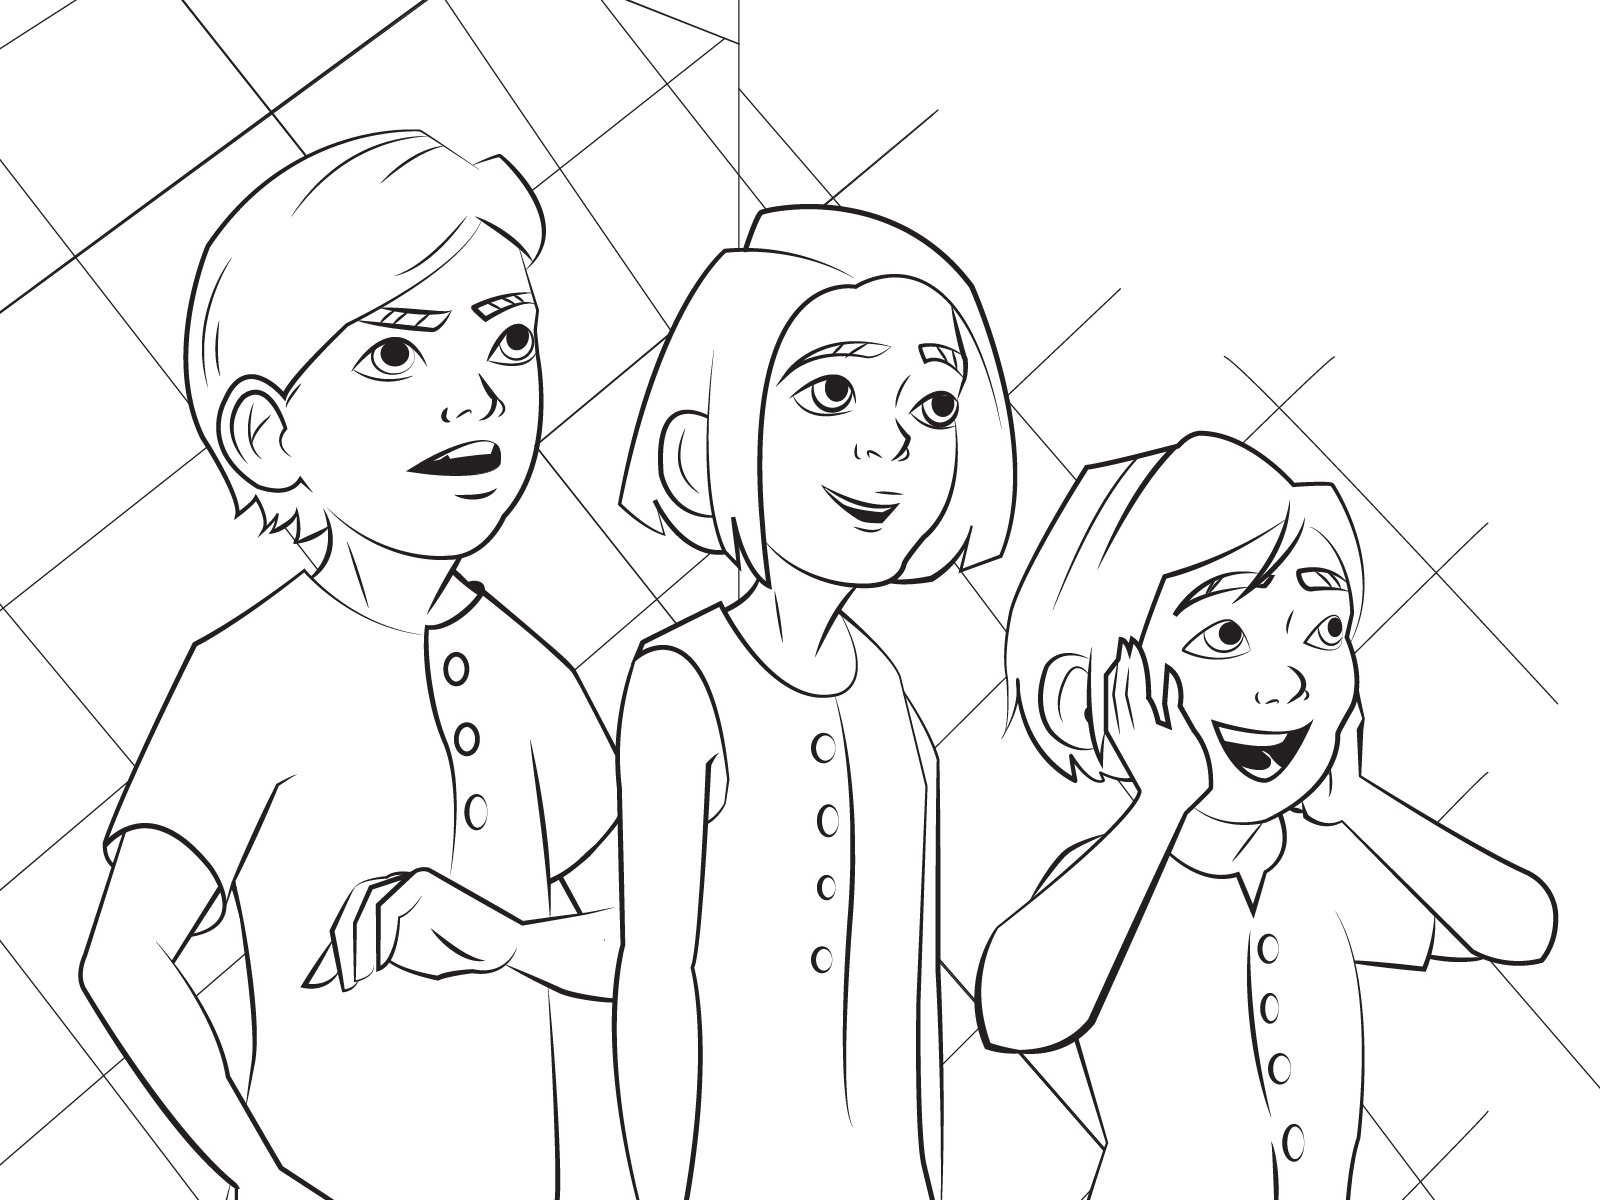 Mary Poppins Returns Coloring Page by Bare Tree Media ...